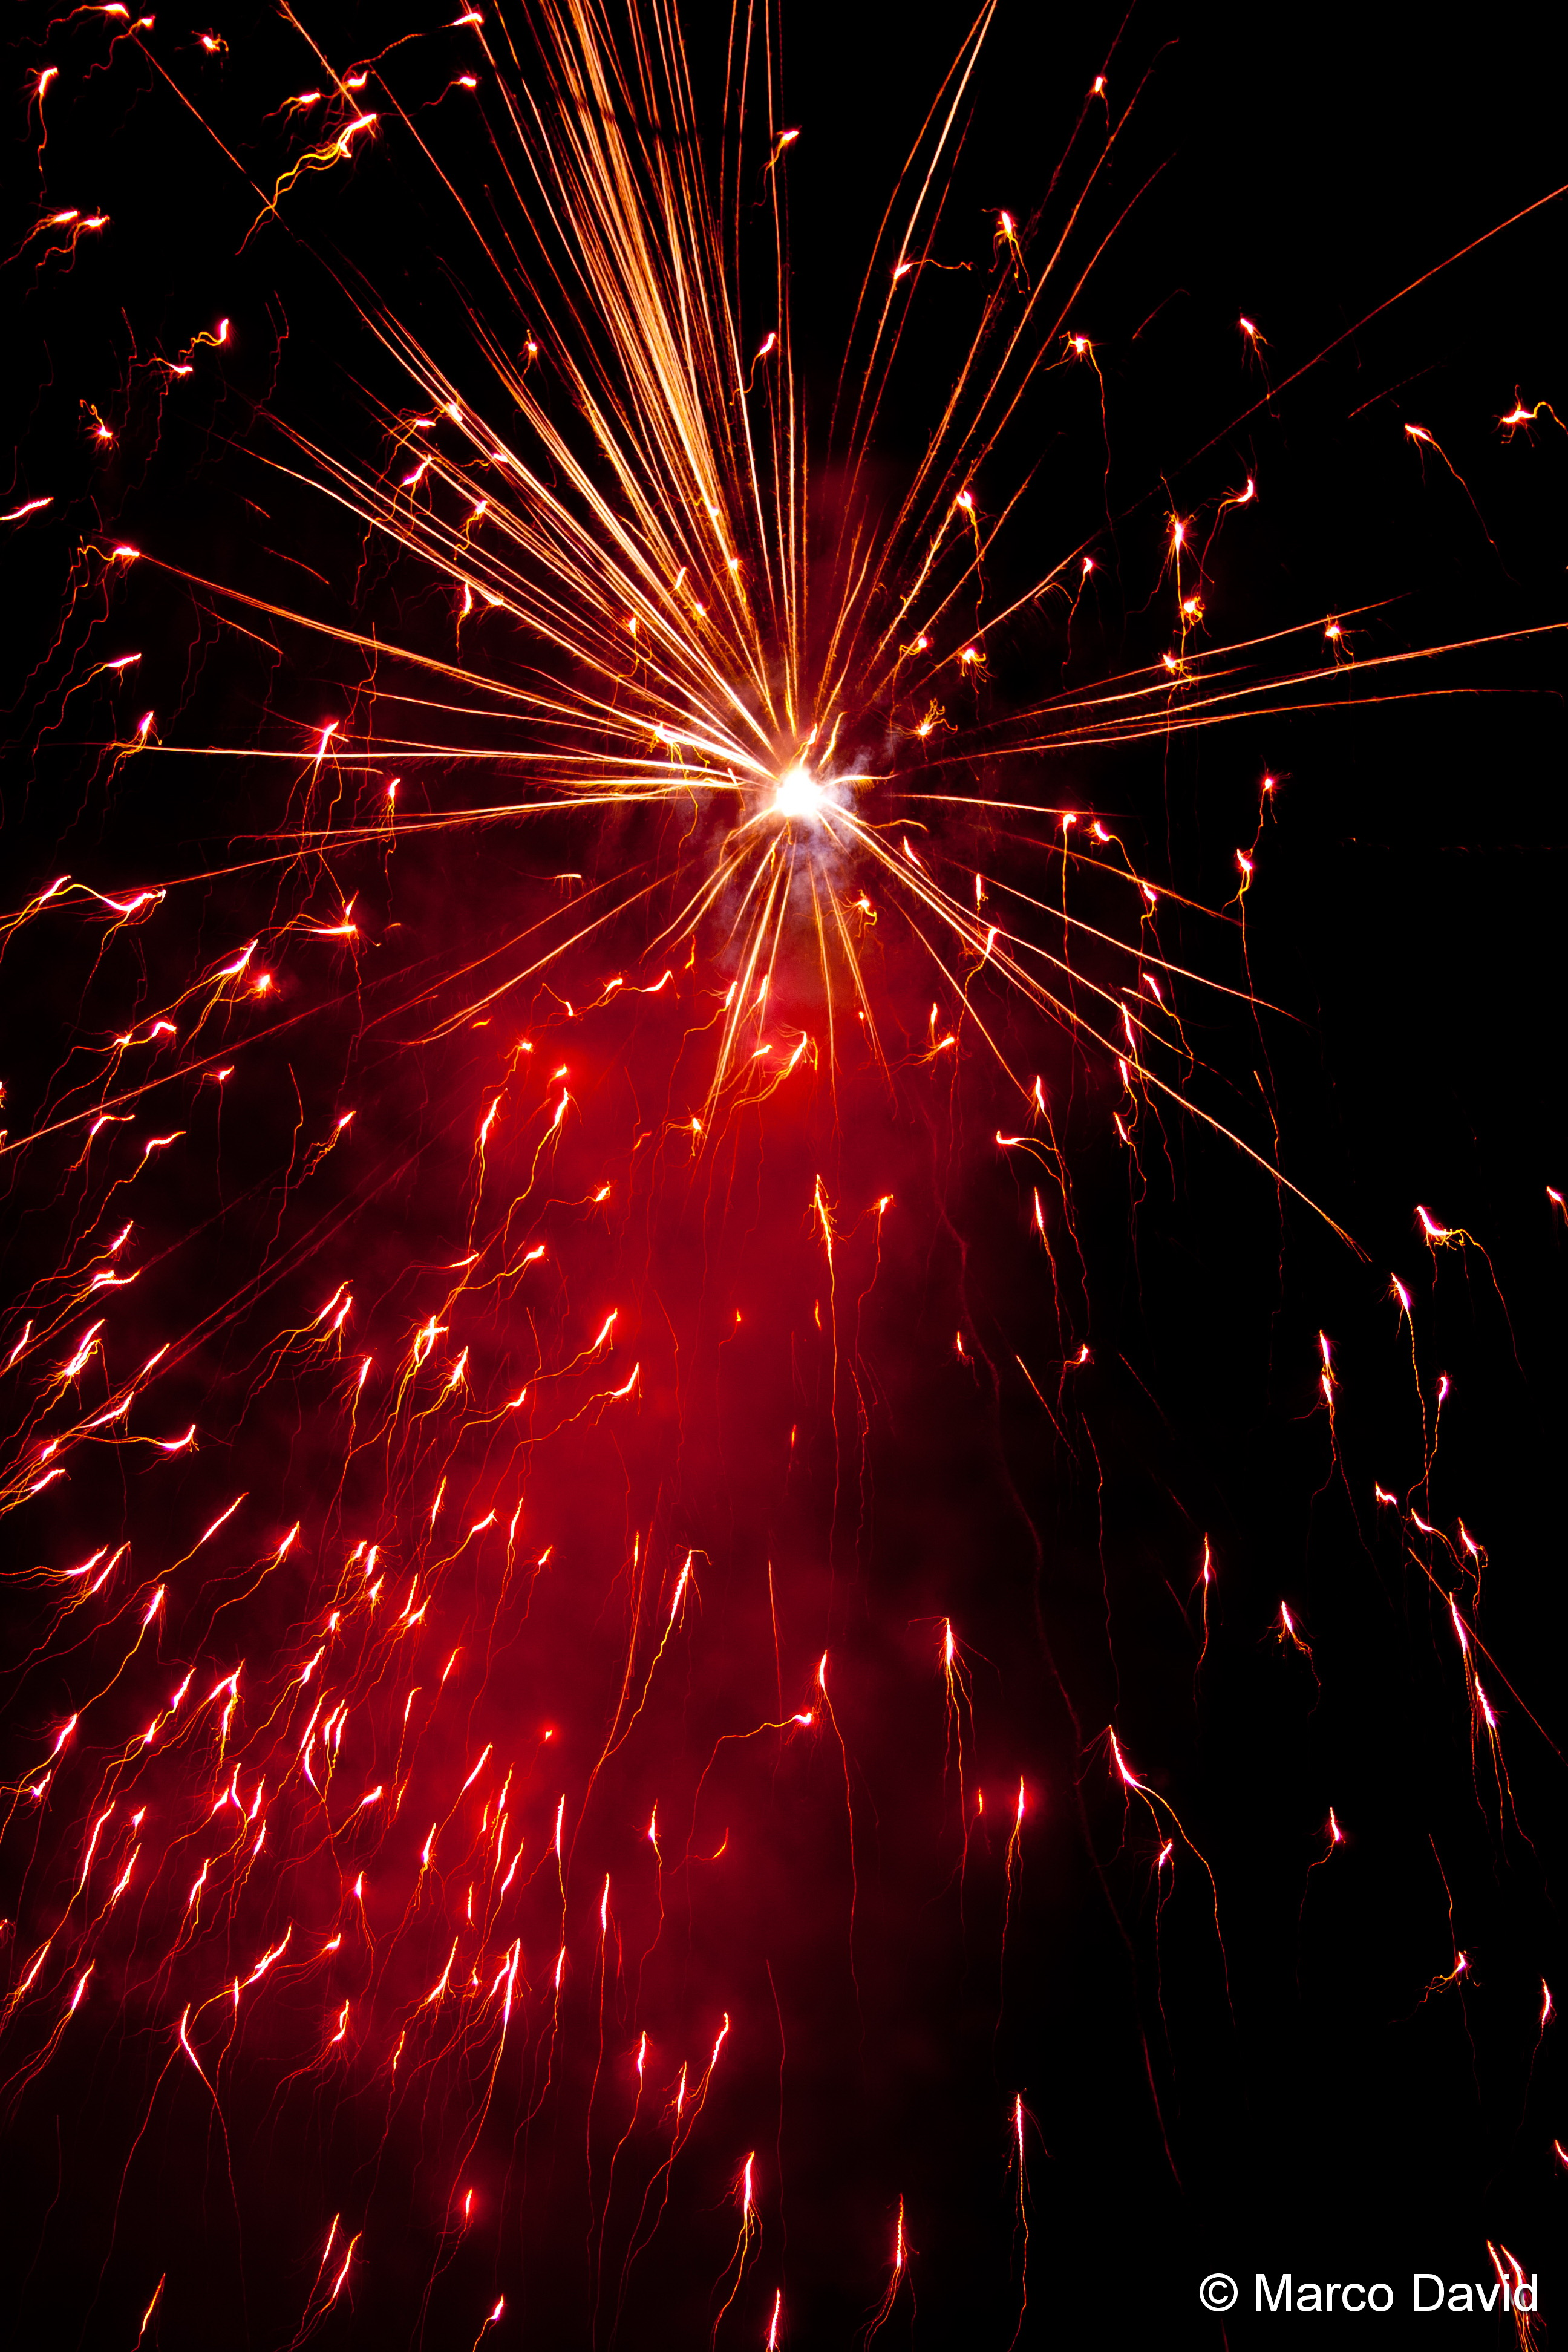 Gutes, neues Jahr euch allen!Happy new year to all of you ...